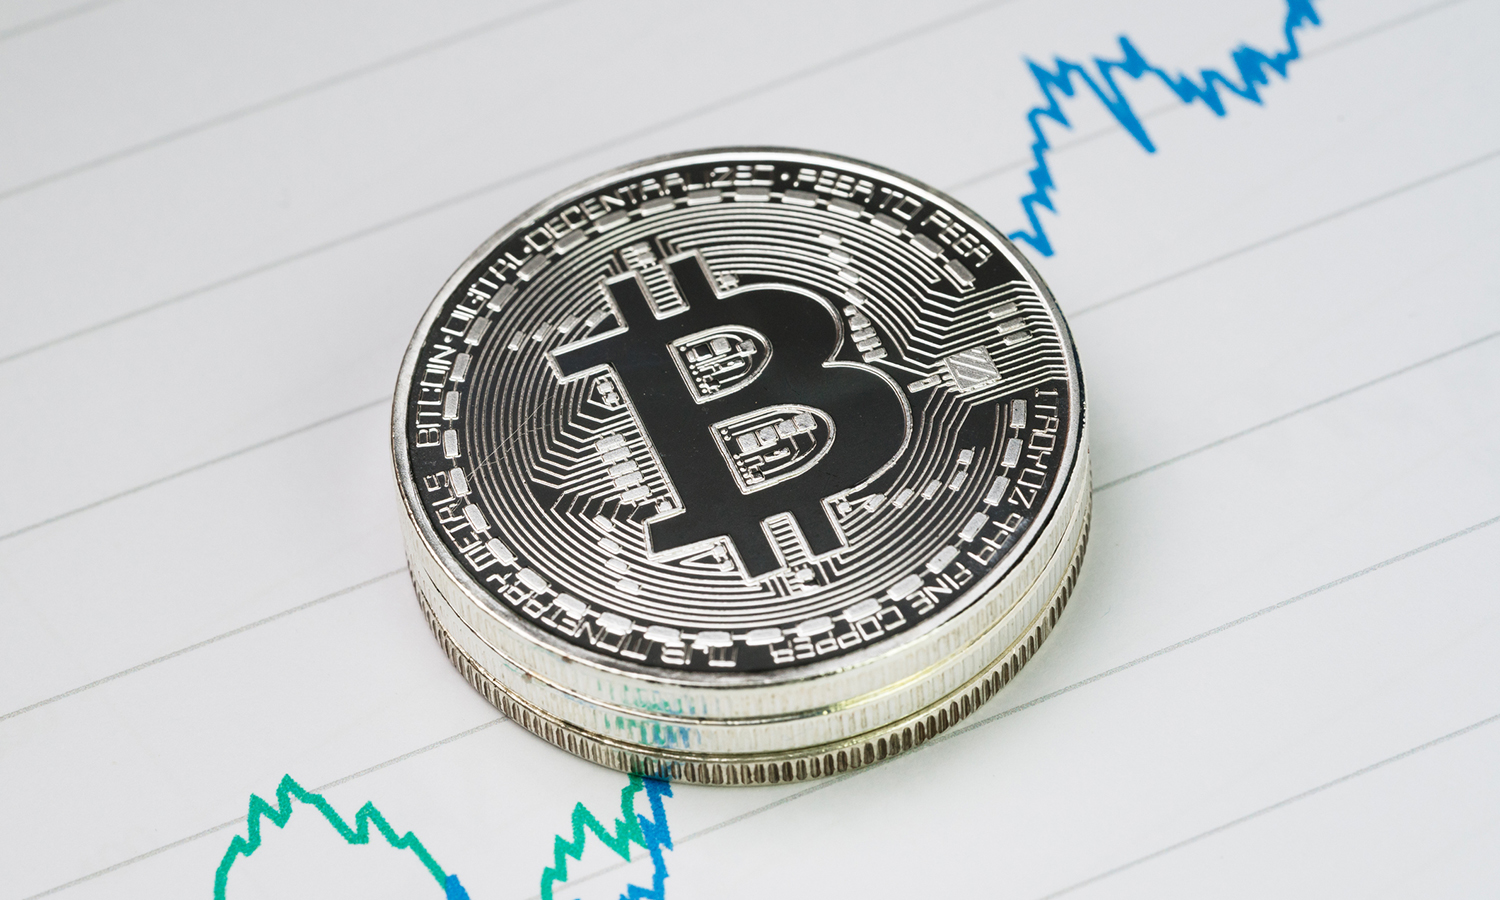 SEC Lawsuit Against Ripple Could Rattle Crypto Exchanges ...